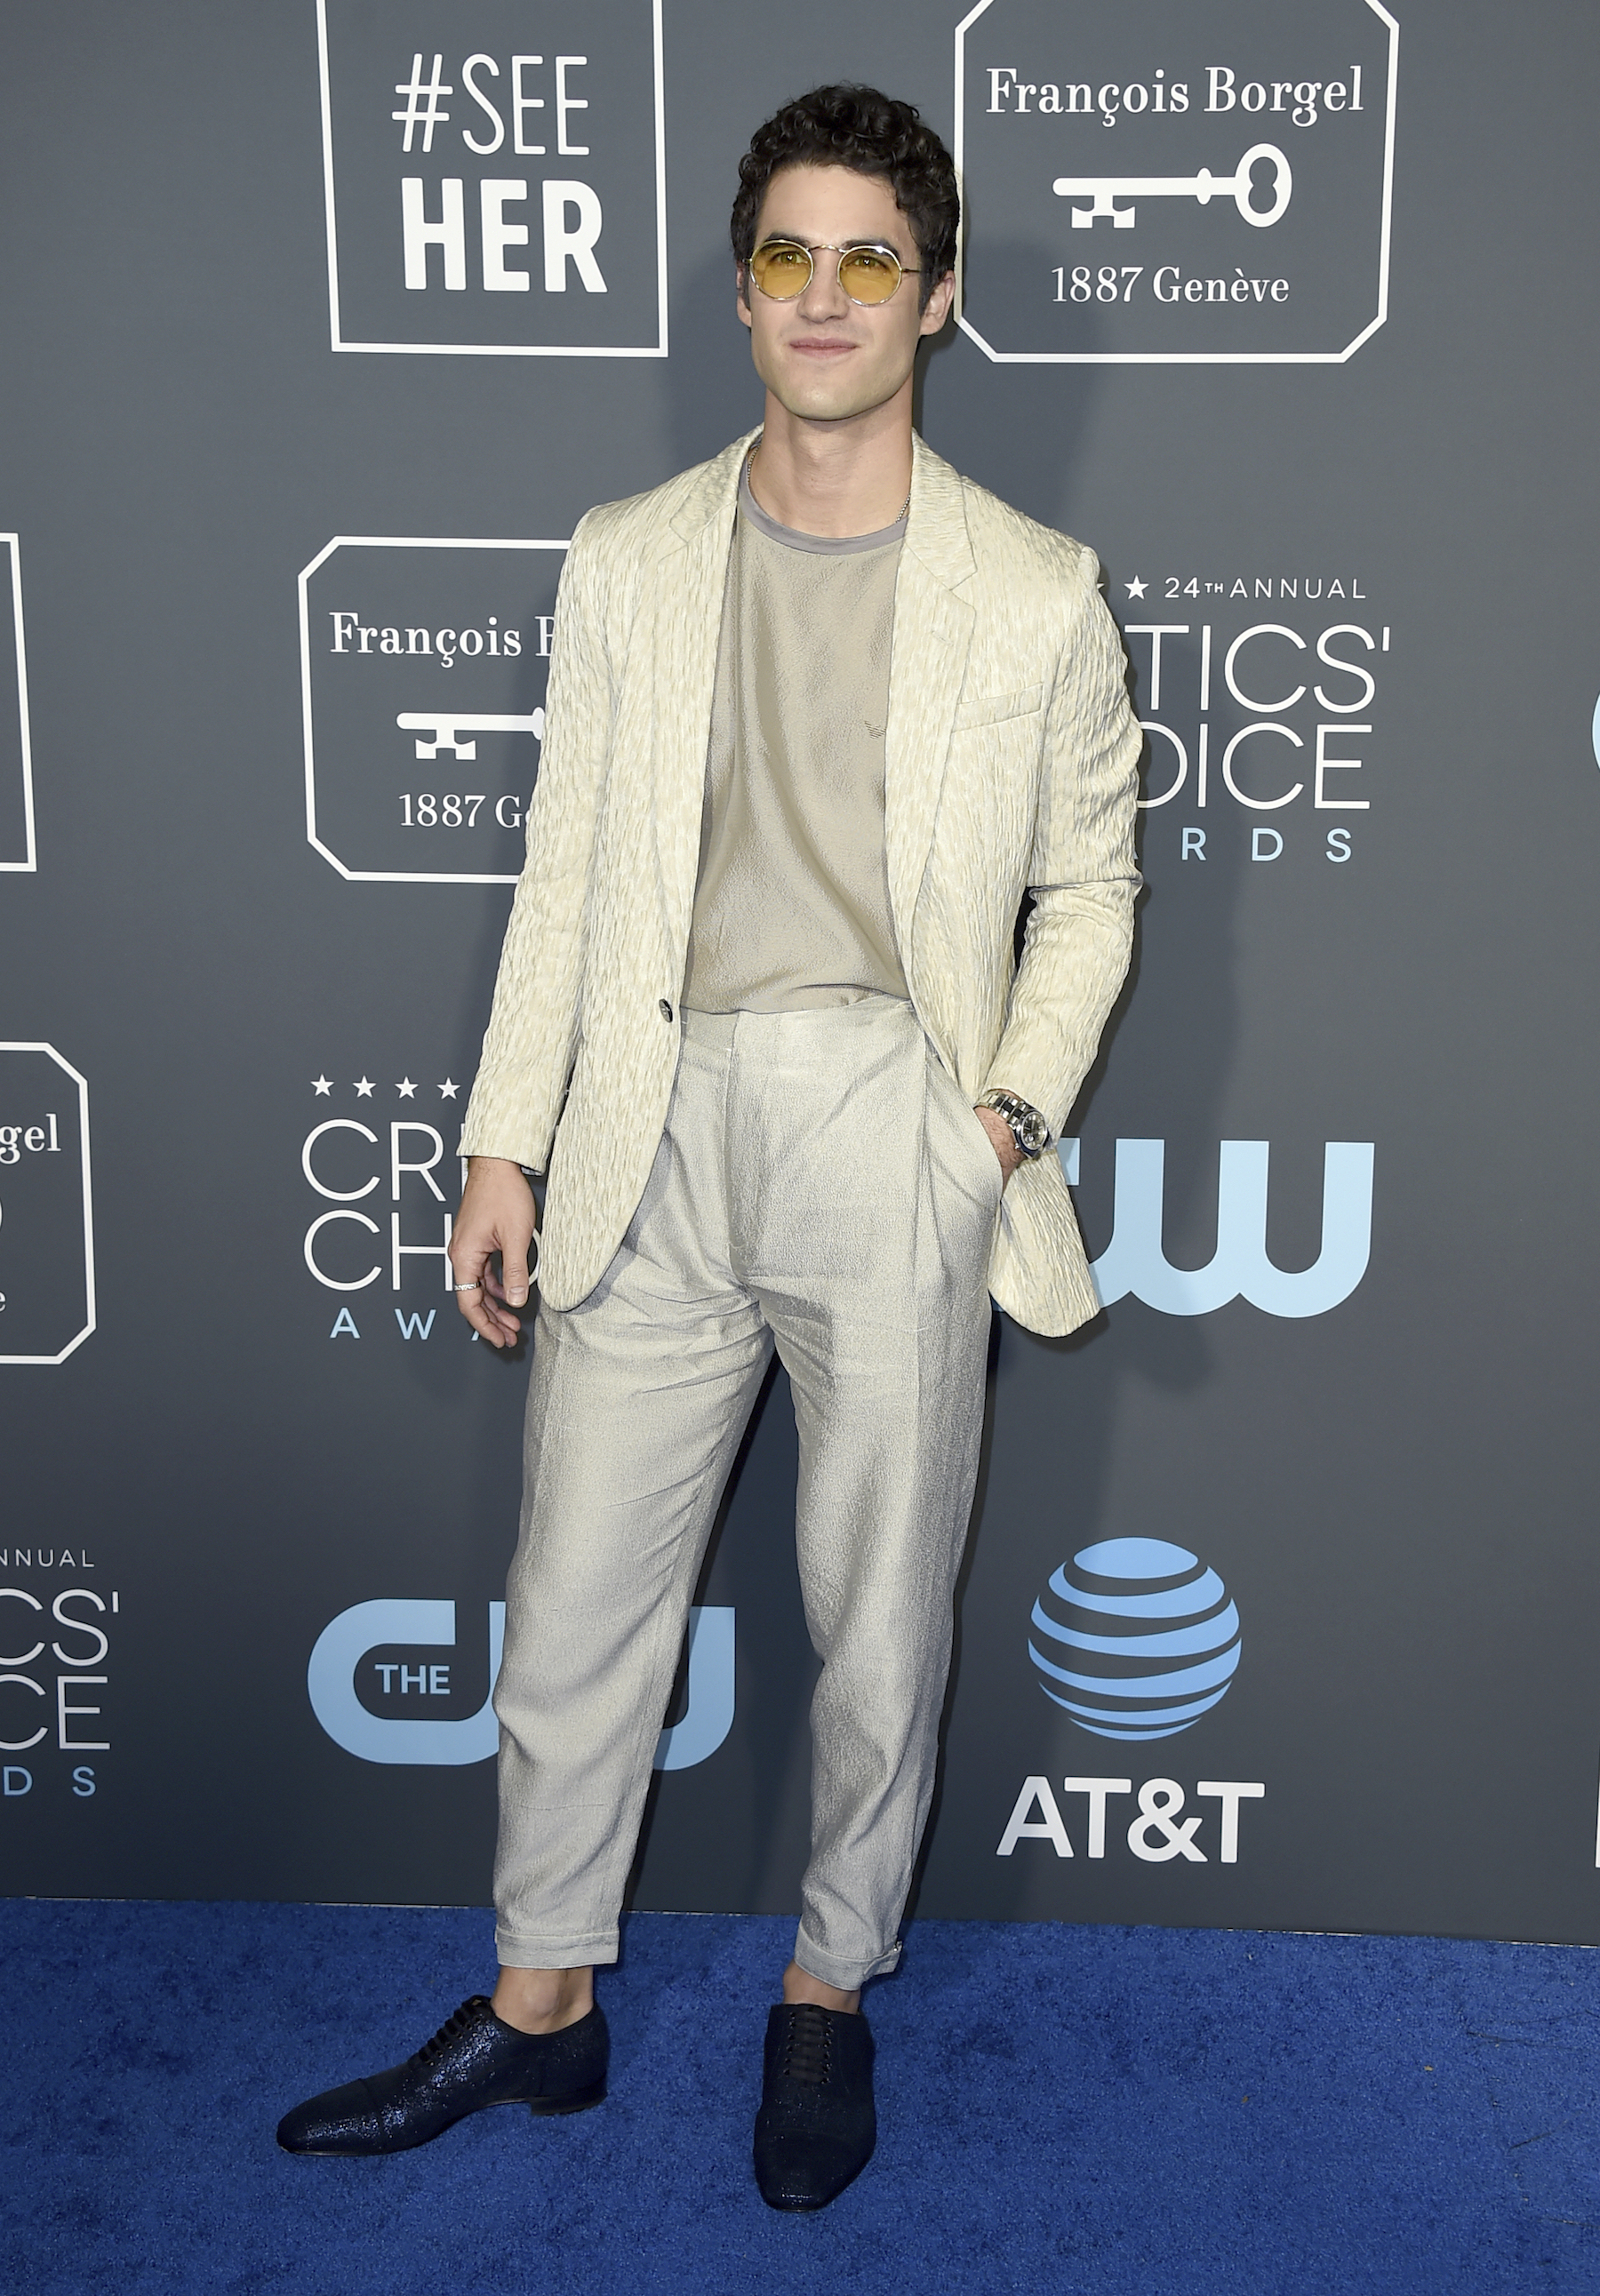 "<div class=""meta image-caption""><div class=""origin-logo origin-image ap""><span>AP</span></div><span class=""caption-text"">Darren Criss arrives at the 24th annual Critics' Choice Awards on Sunday, Jan. 13, 2019, at the Barker Hangar in Santa Monica, Calif. (Jordan Strauss/Invision/AP)</span></div>"